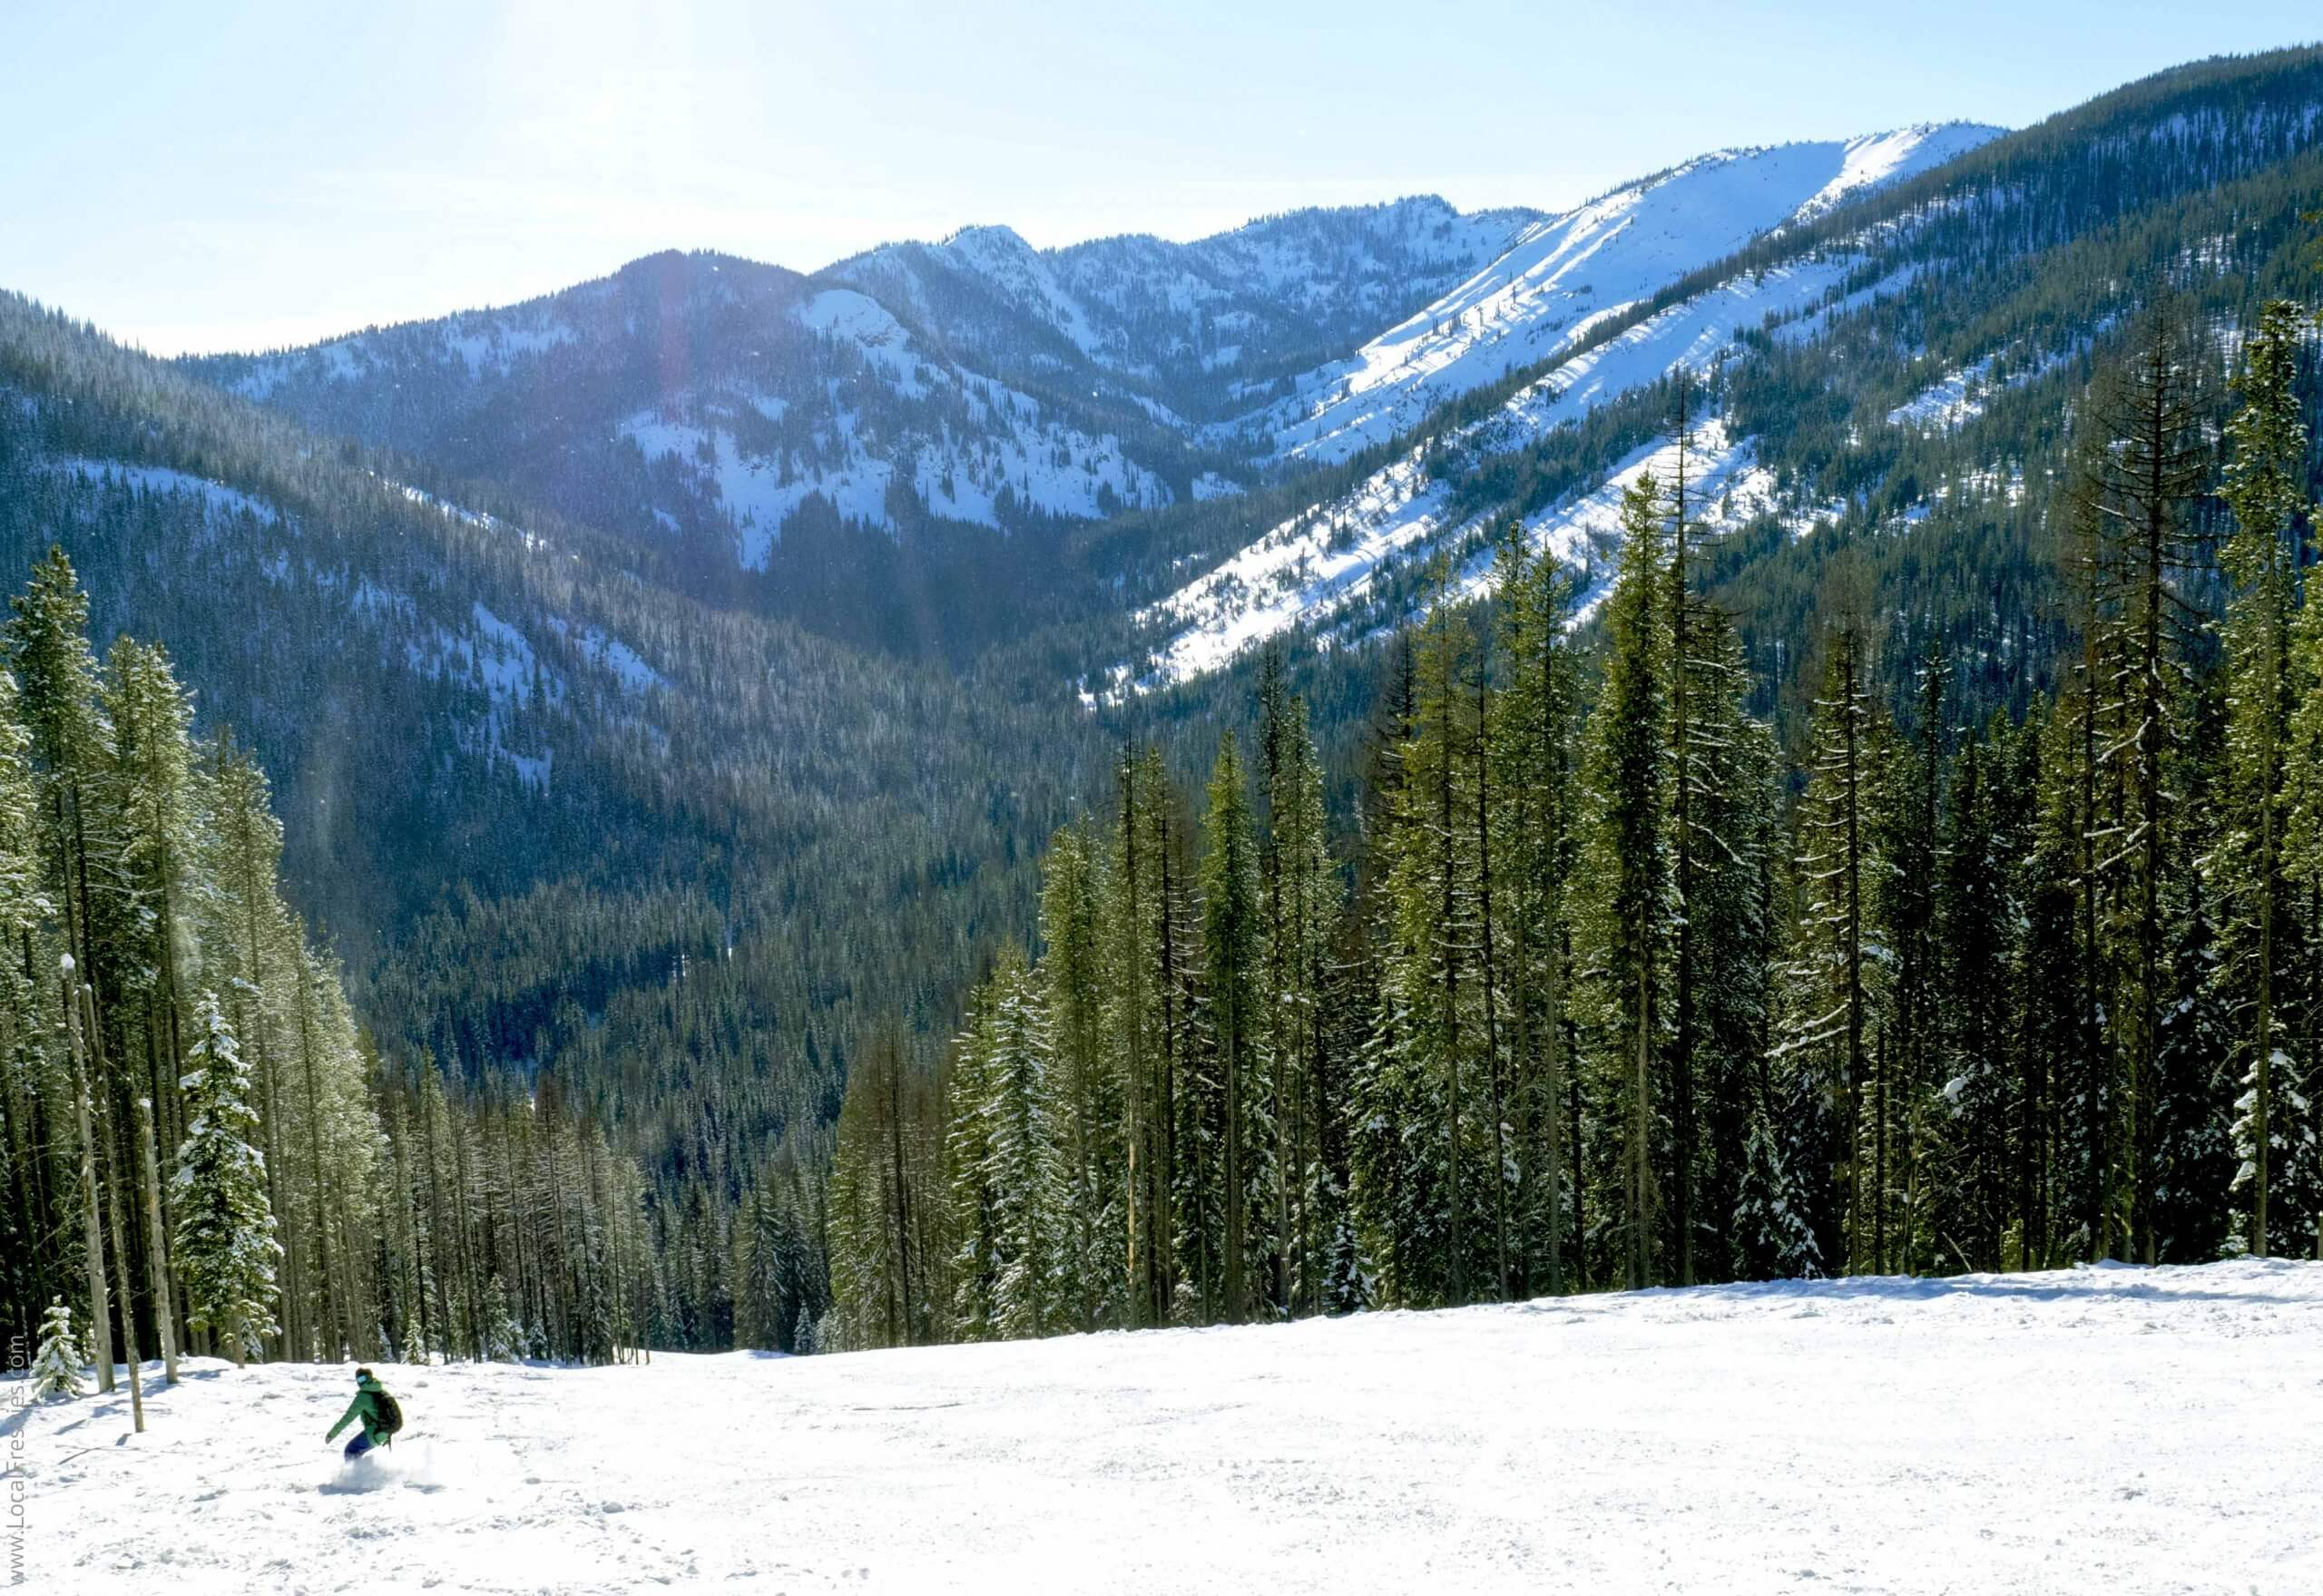 snowboarder on mountain hill